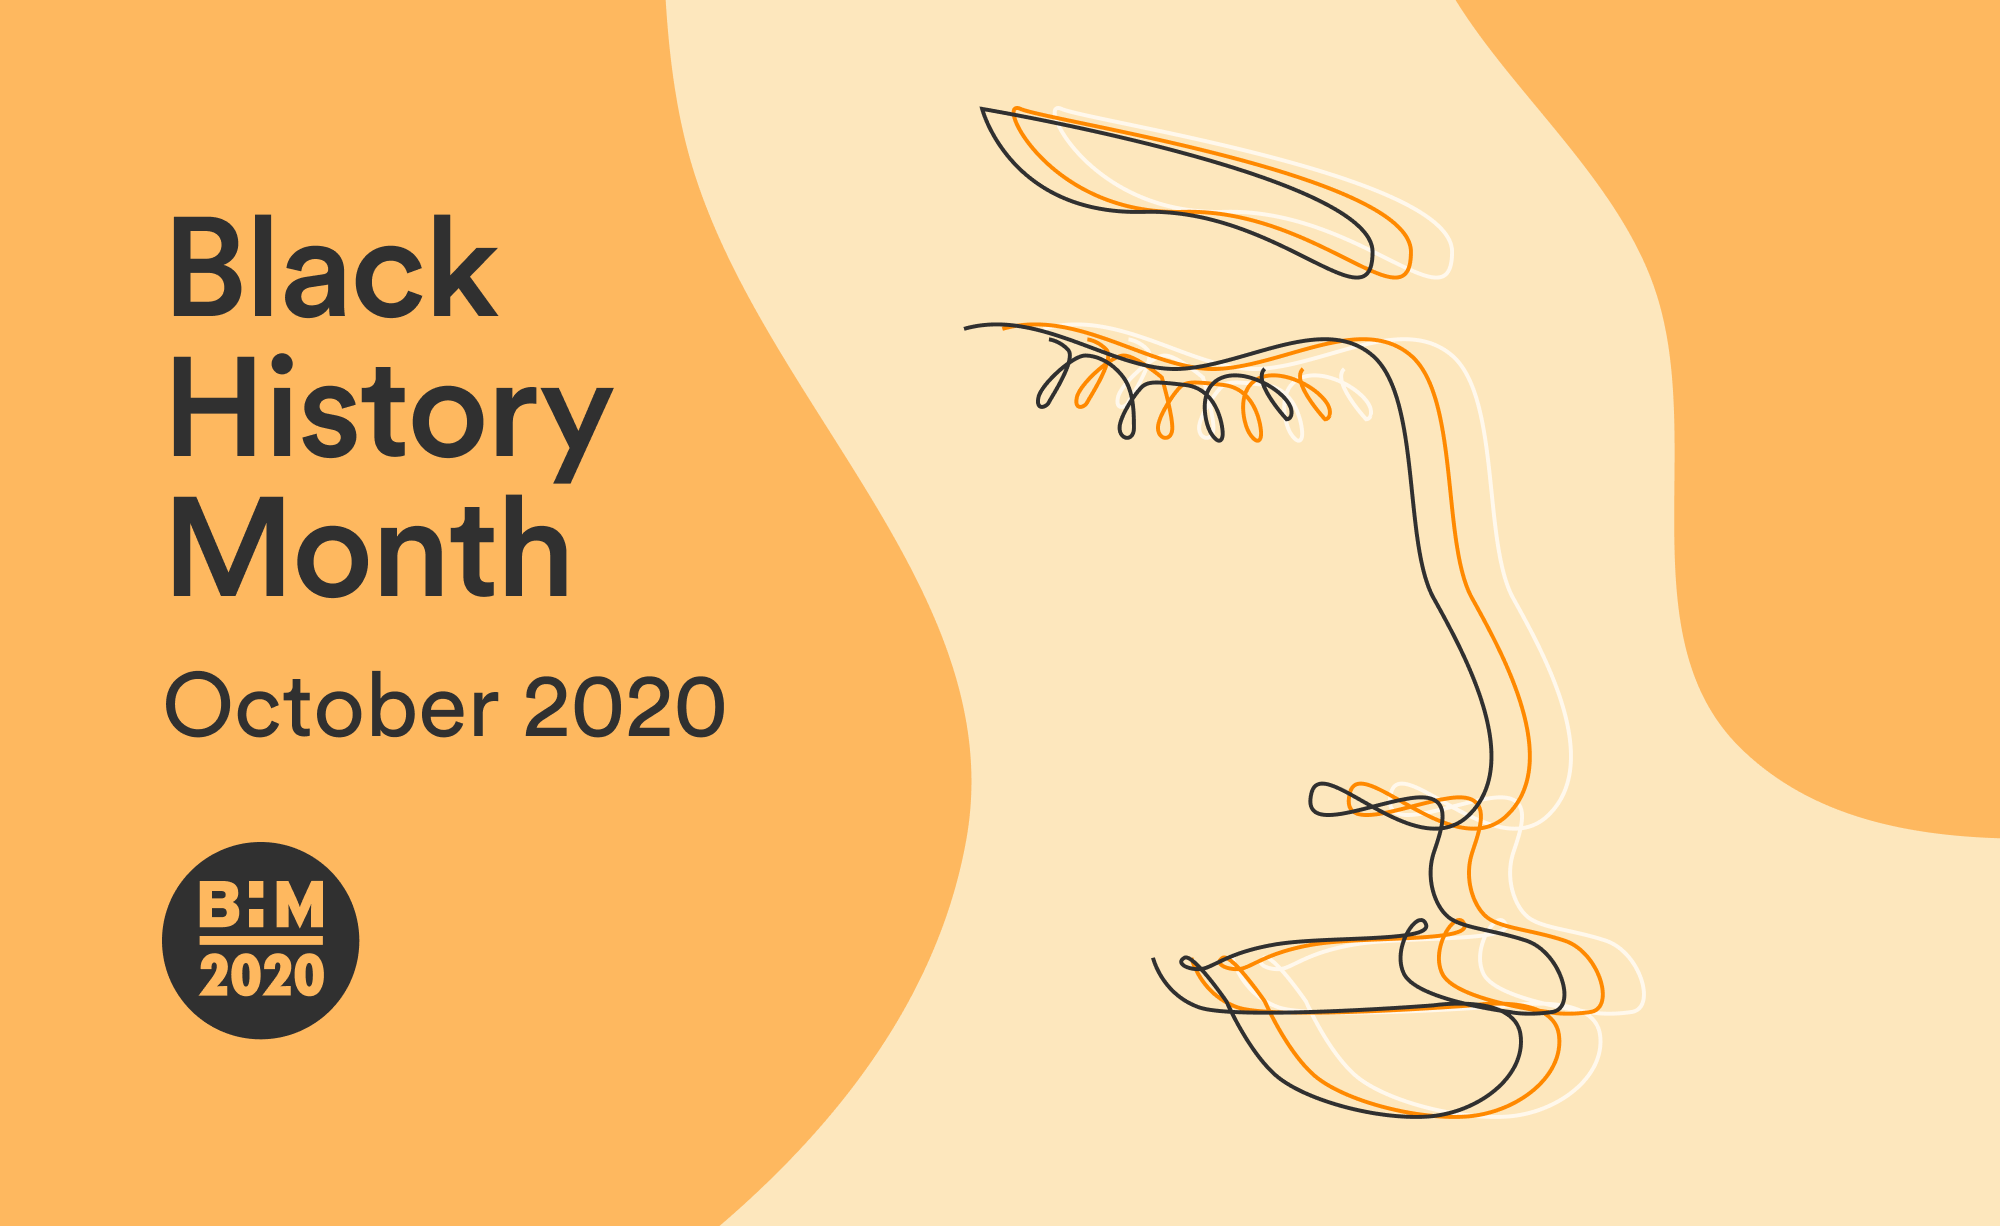 An image that depicts a line drawing of a face to represent Black History Month 2020 in the UK.